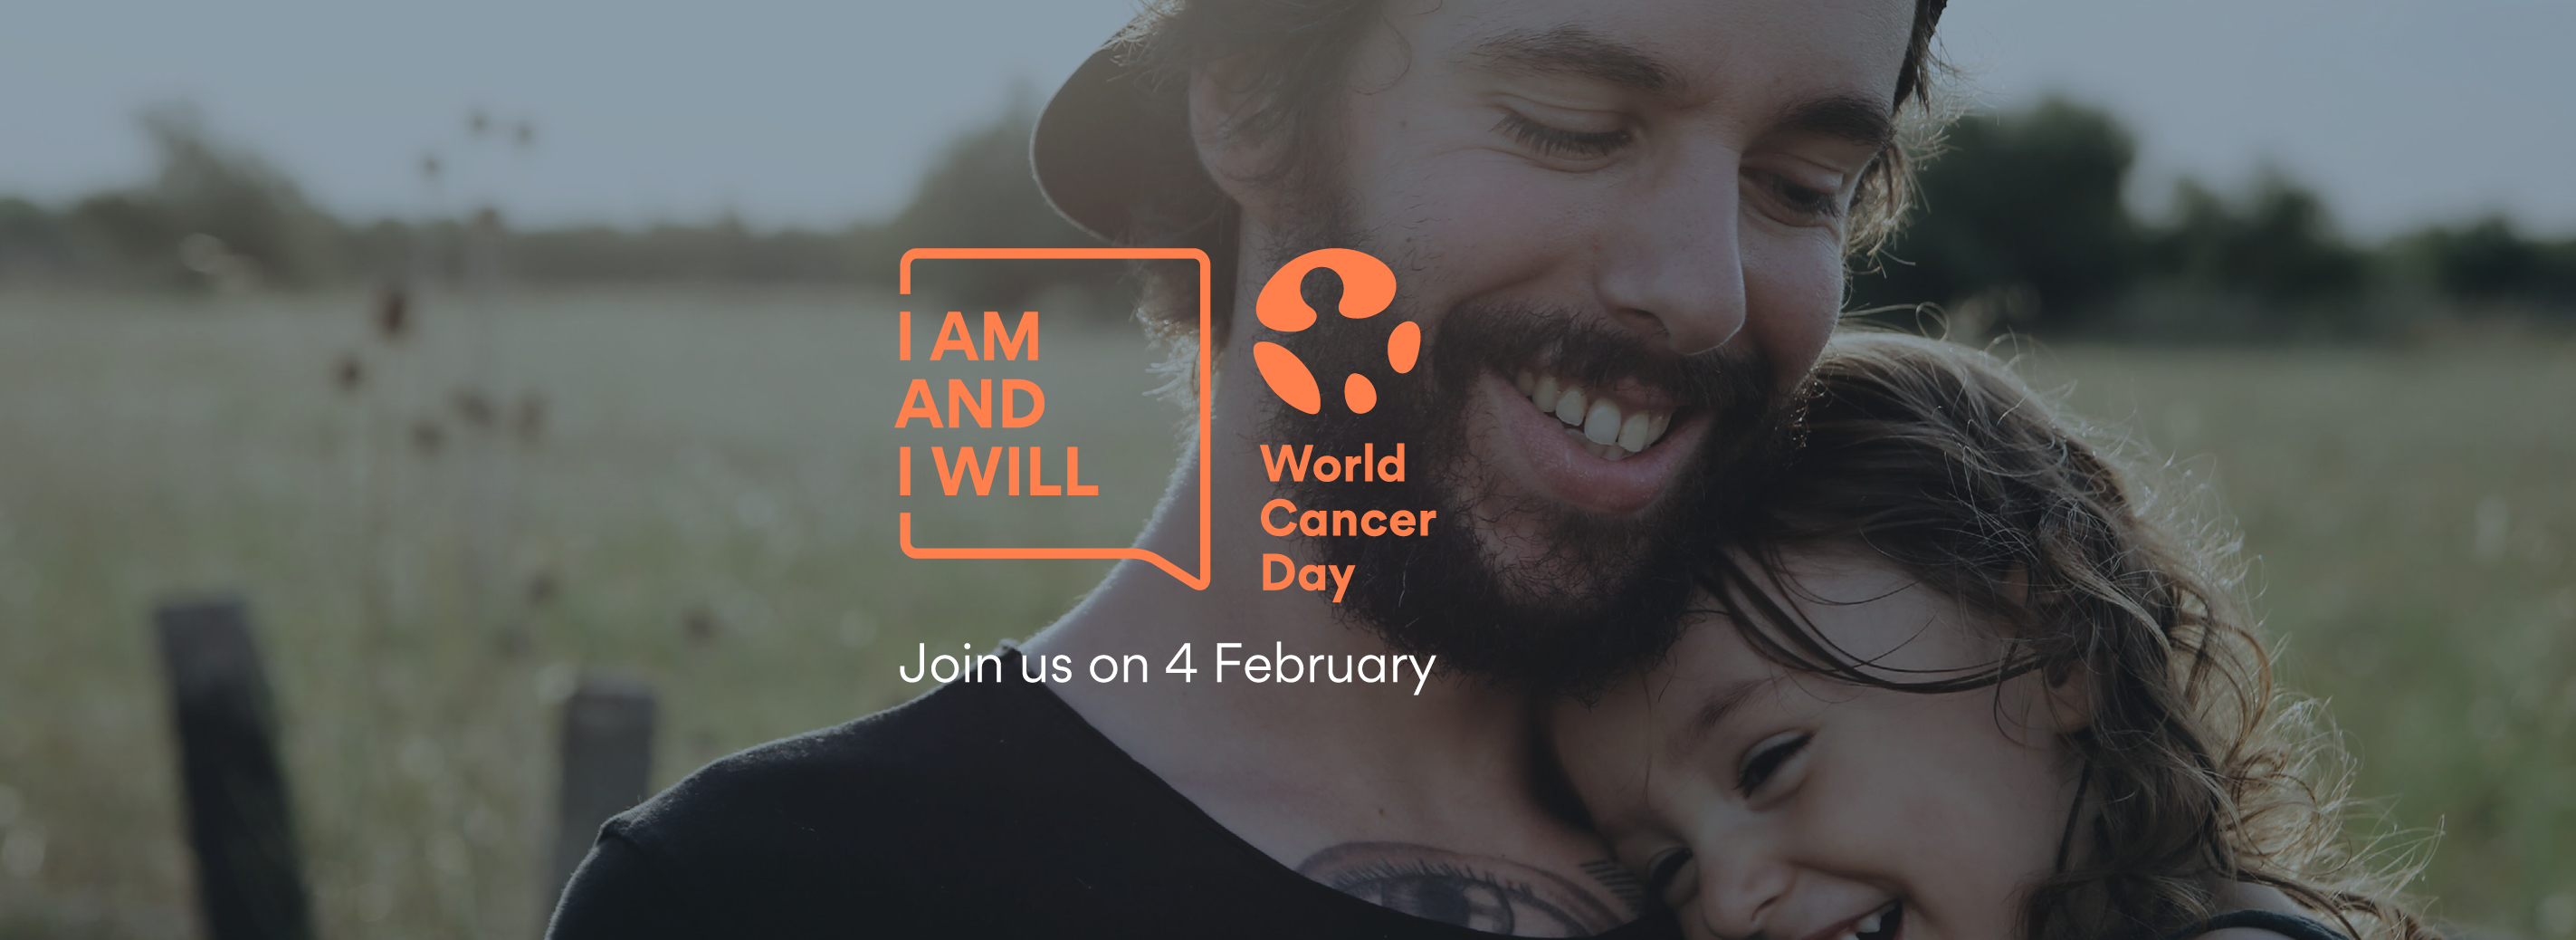 World Cancer Day: I Am And I Will